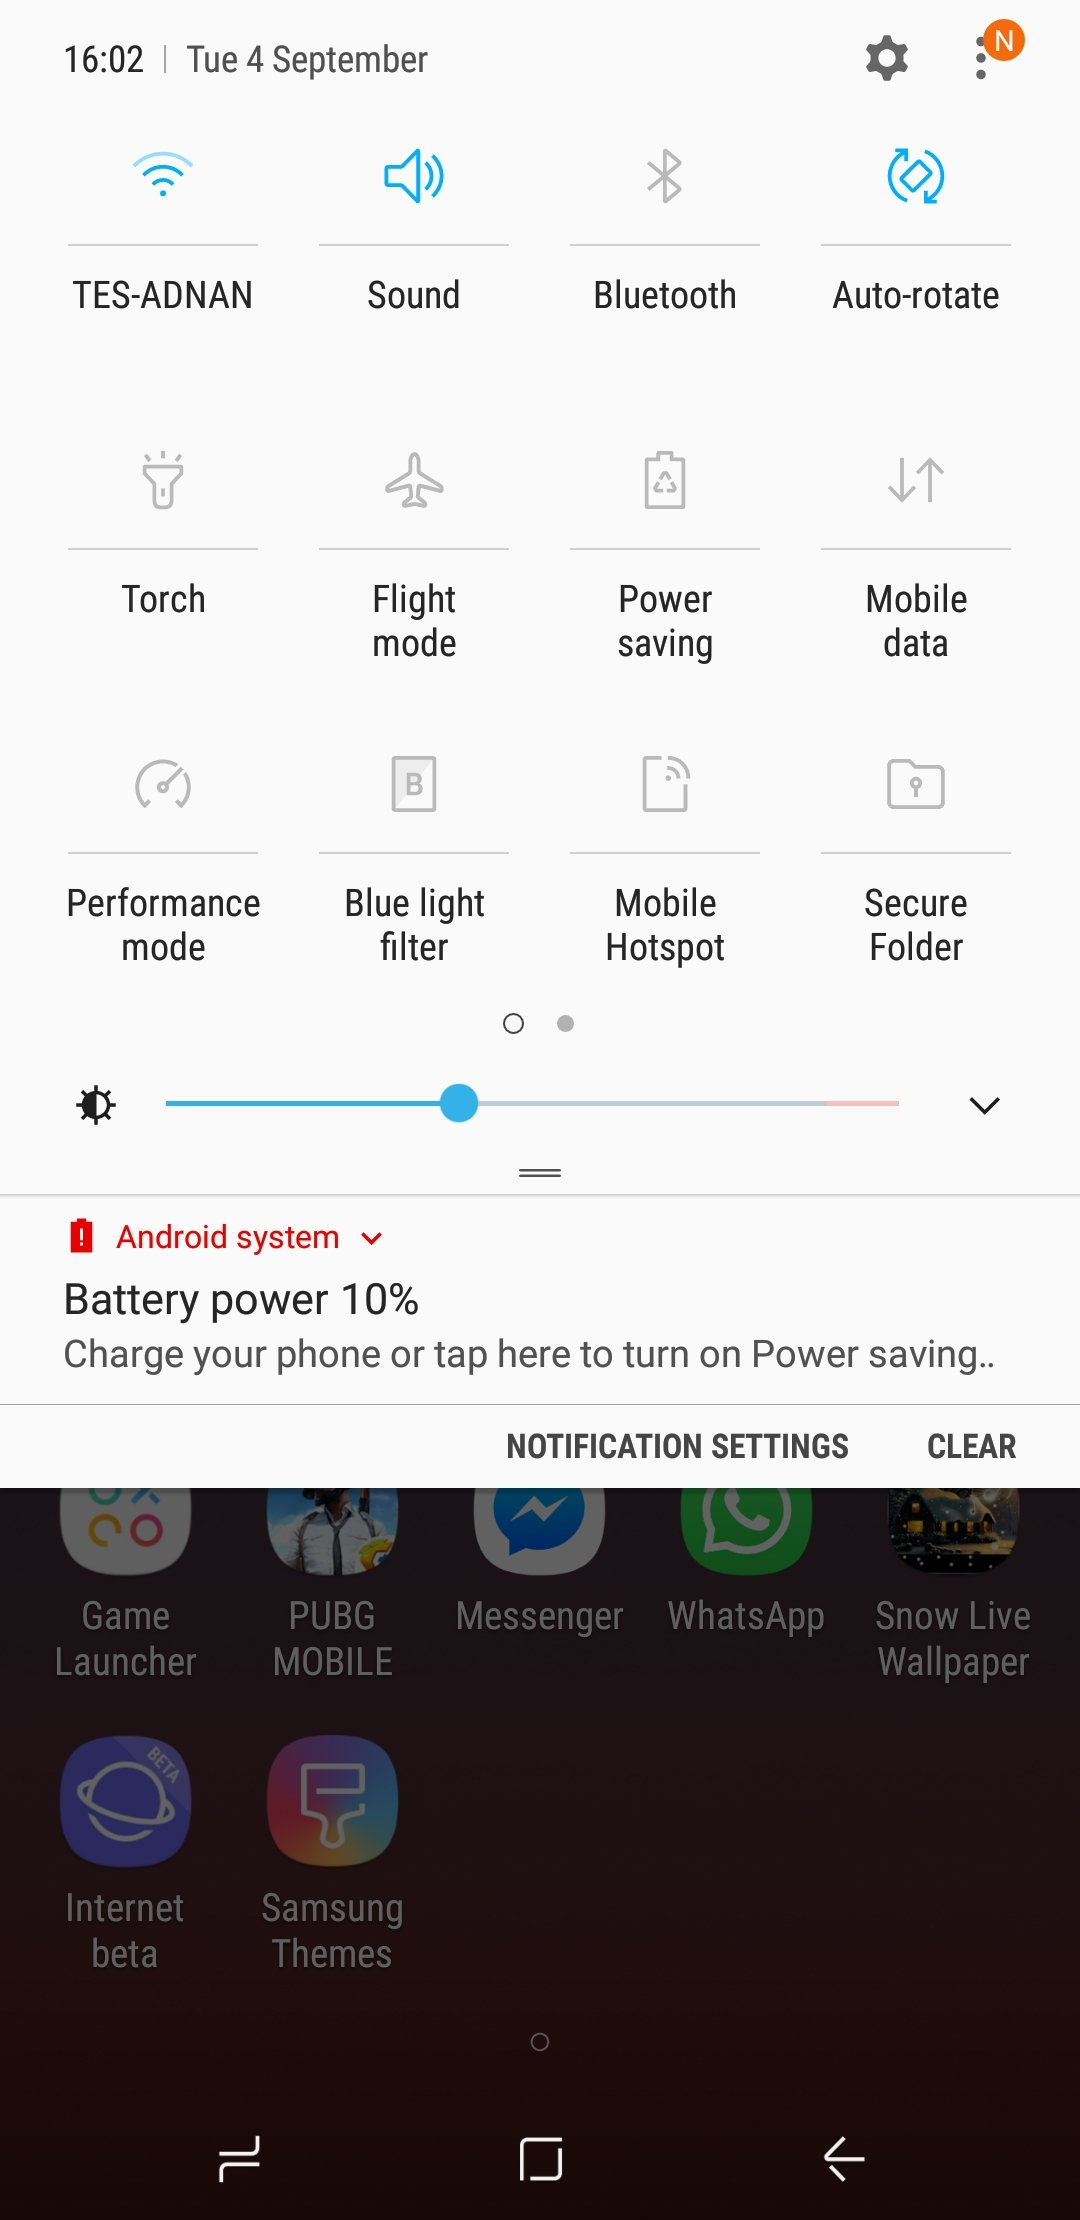 How to use Samsung Secure Folder on Galaxy Note 9 - SamMobile